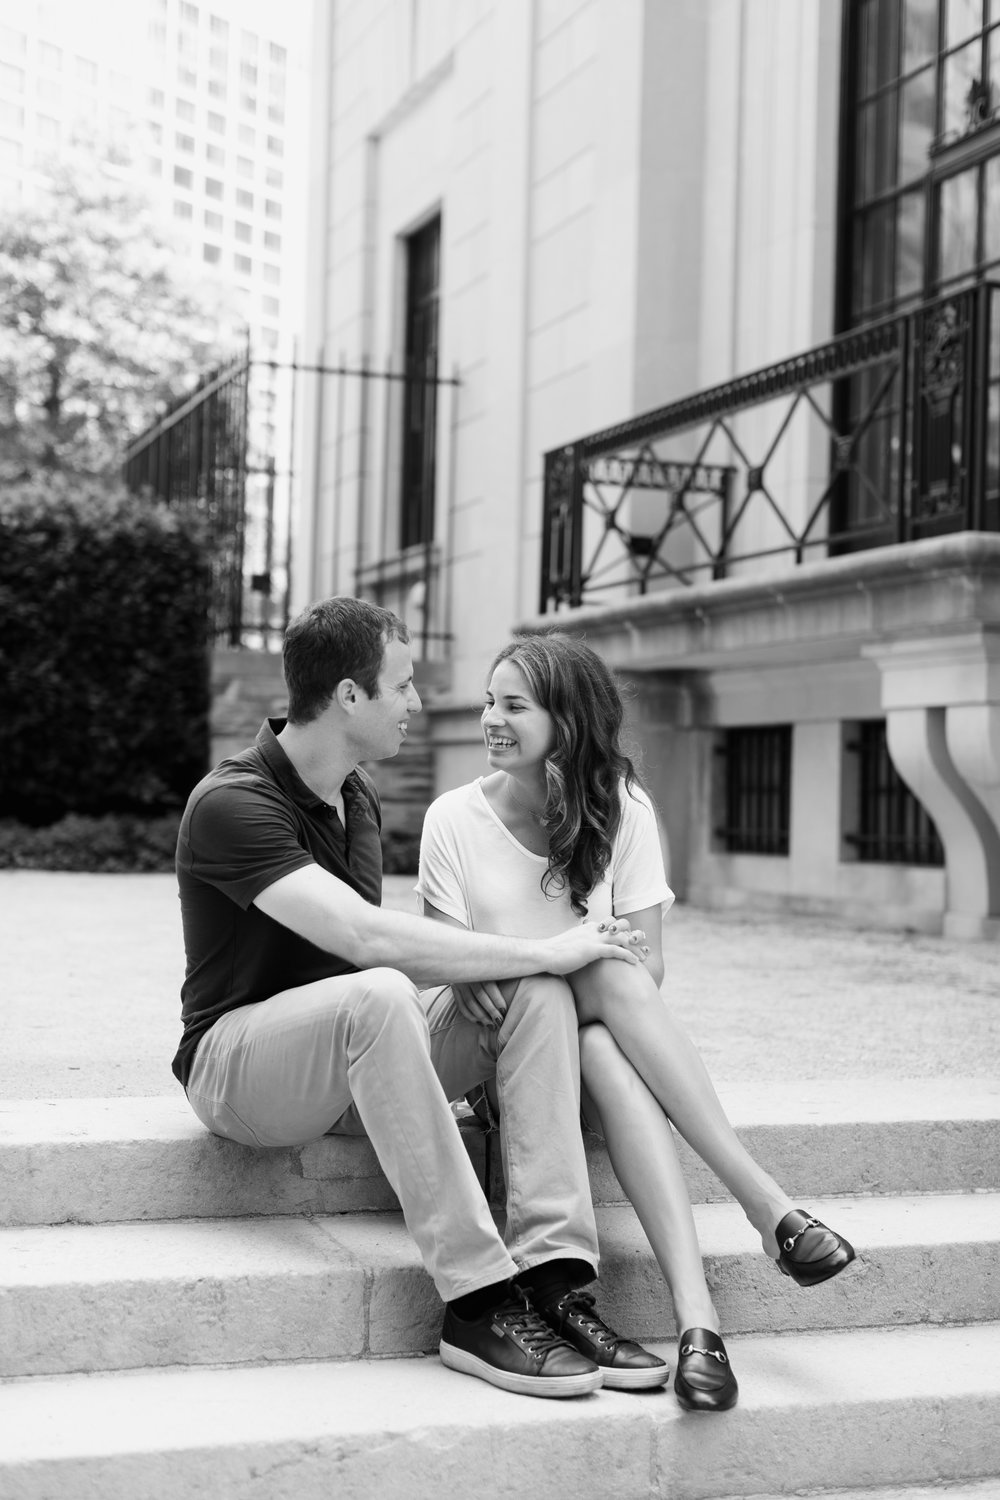 photography-natural-candid-engaged-proposal-philadelphia-wedding-rodin museum-barnes foundation-parkway-modern-lifestyle-13.JPG